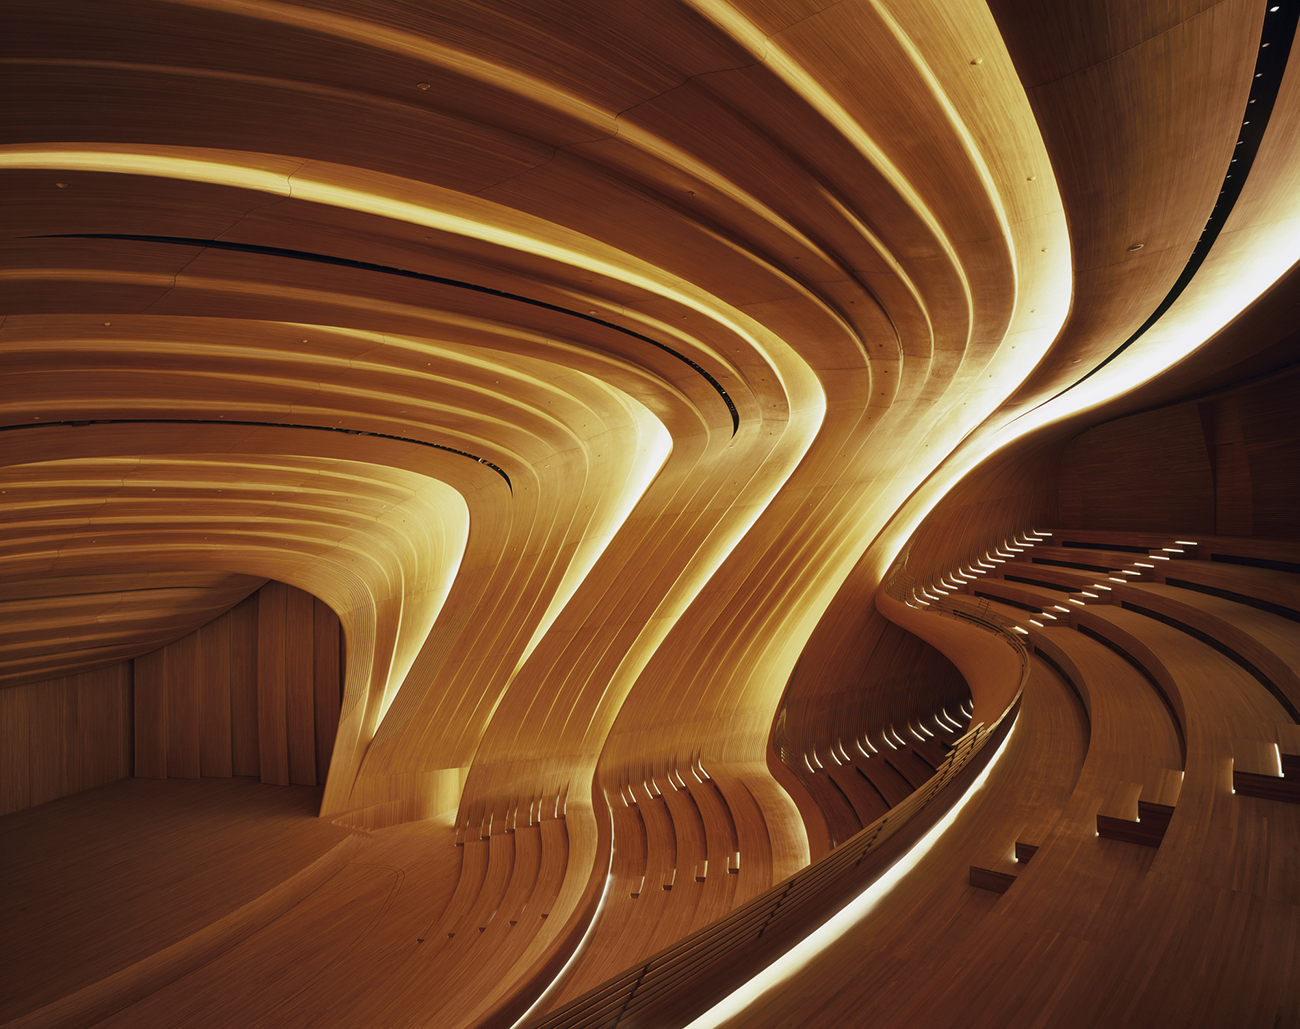 Heydar Aliyev Center by Zaha Hadid Architects. Photography by  Hélène Binet .